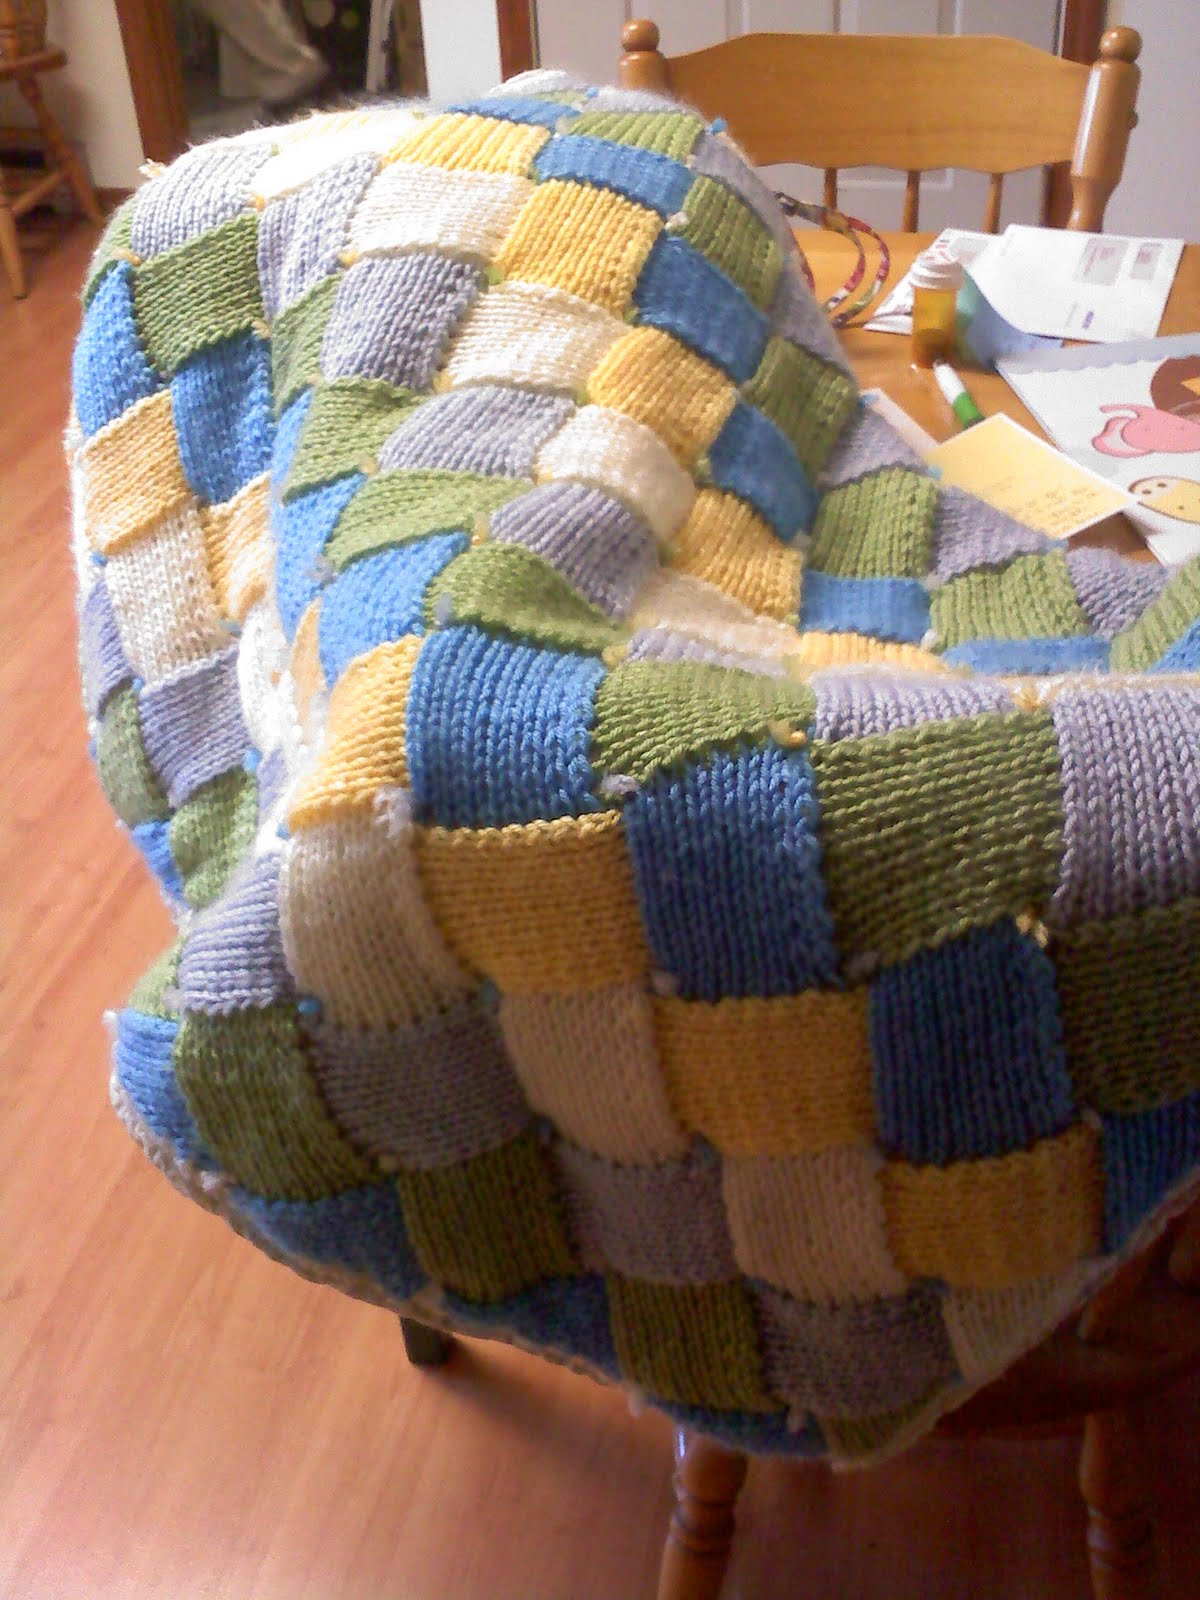 Entrelac Blanket Knitting Pattern : Coping by Knitting: Entrelac Baby Blanket